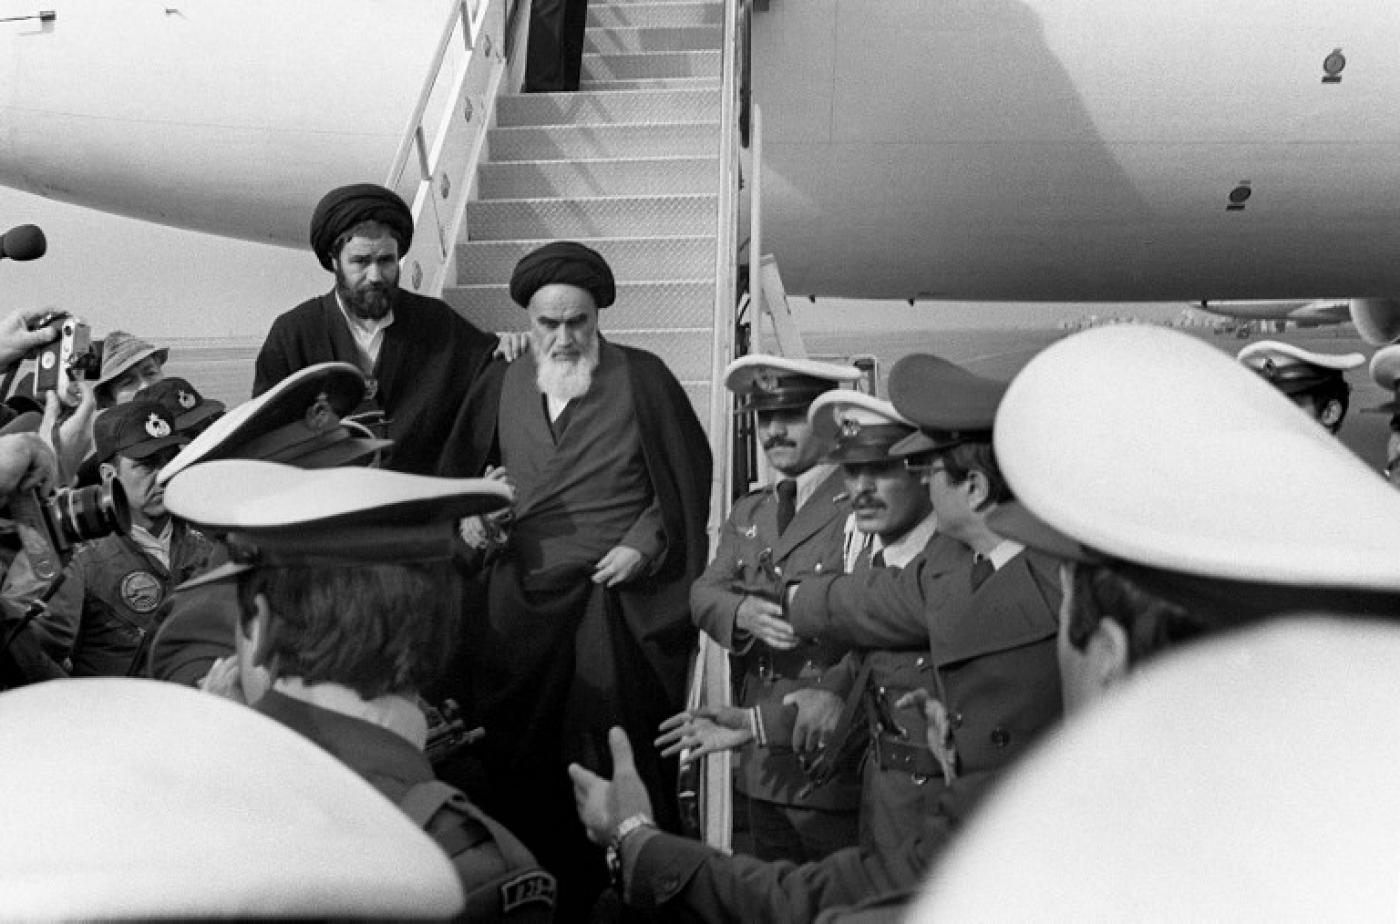 The Ayatollah Khomeini arrives in Tehran - but many Iranians went overseas after the 1979 revolution (file)